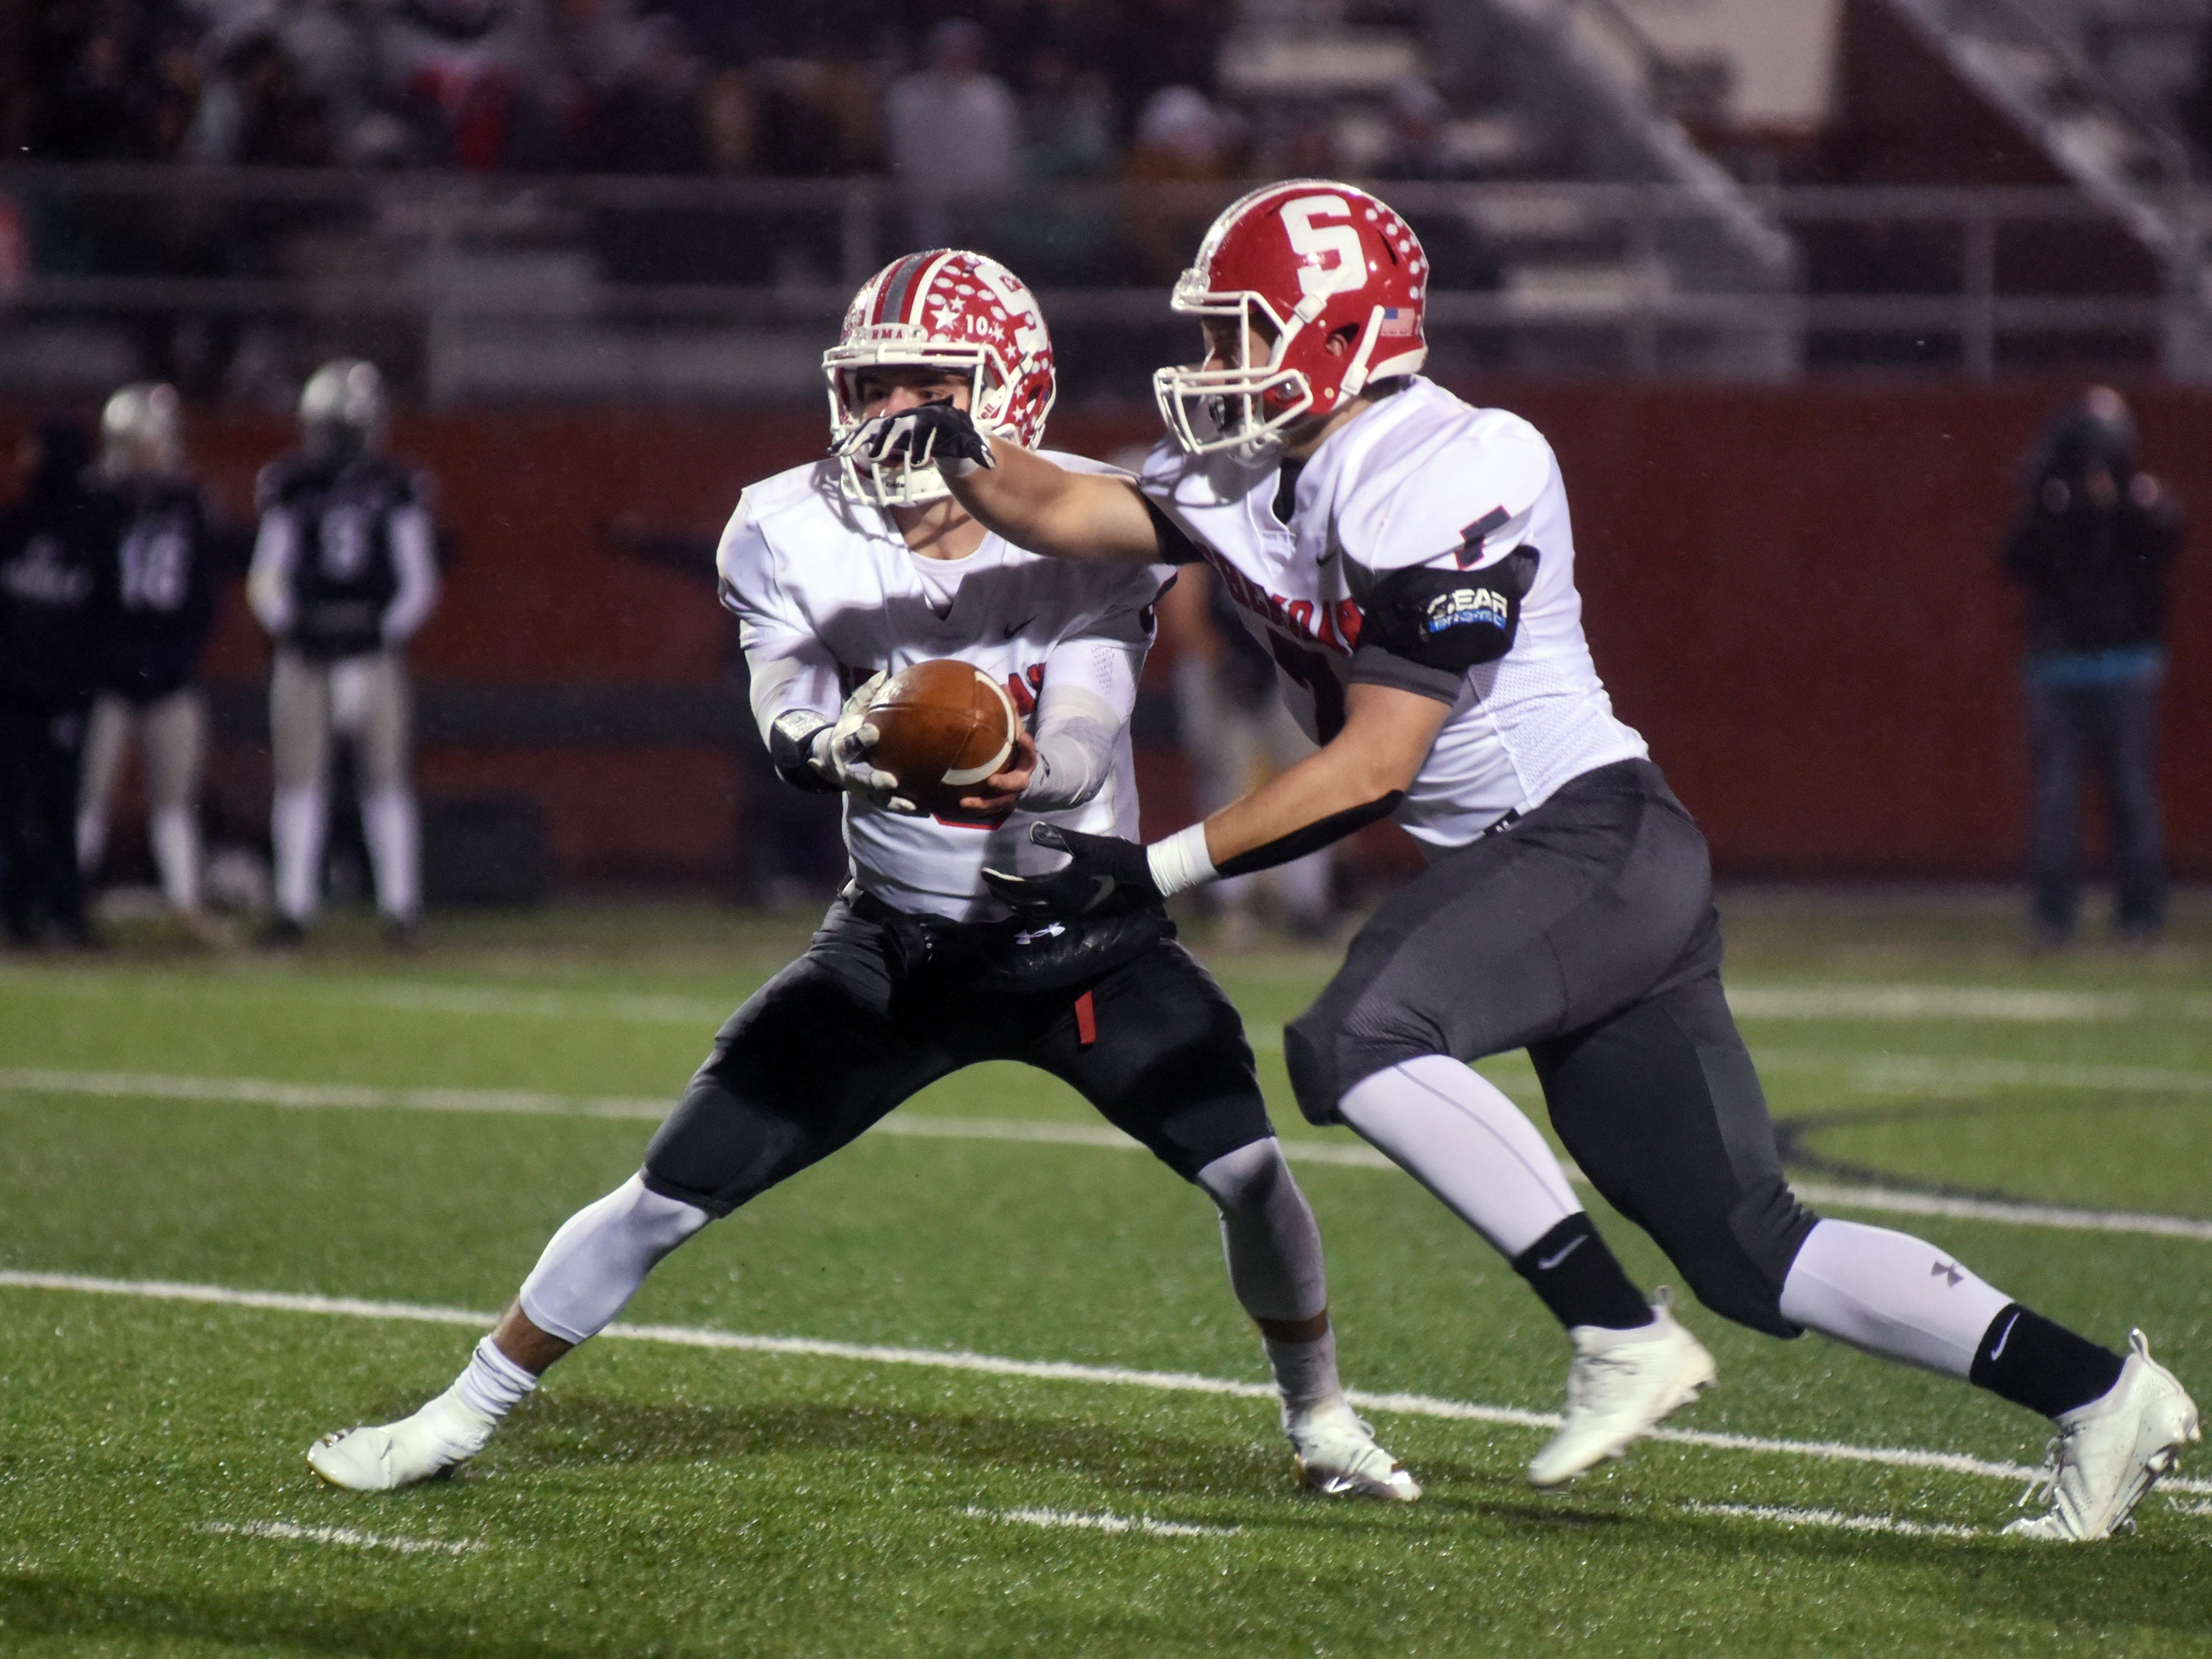 Sheridan's Ethan Heller runs the read option with Will Hamilton during the second half against Granville.